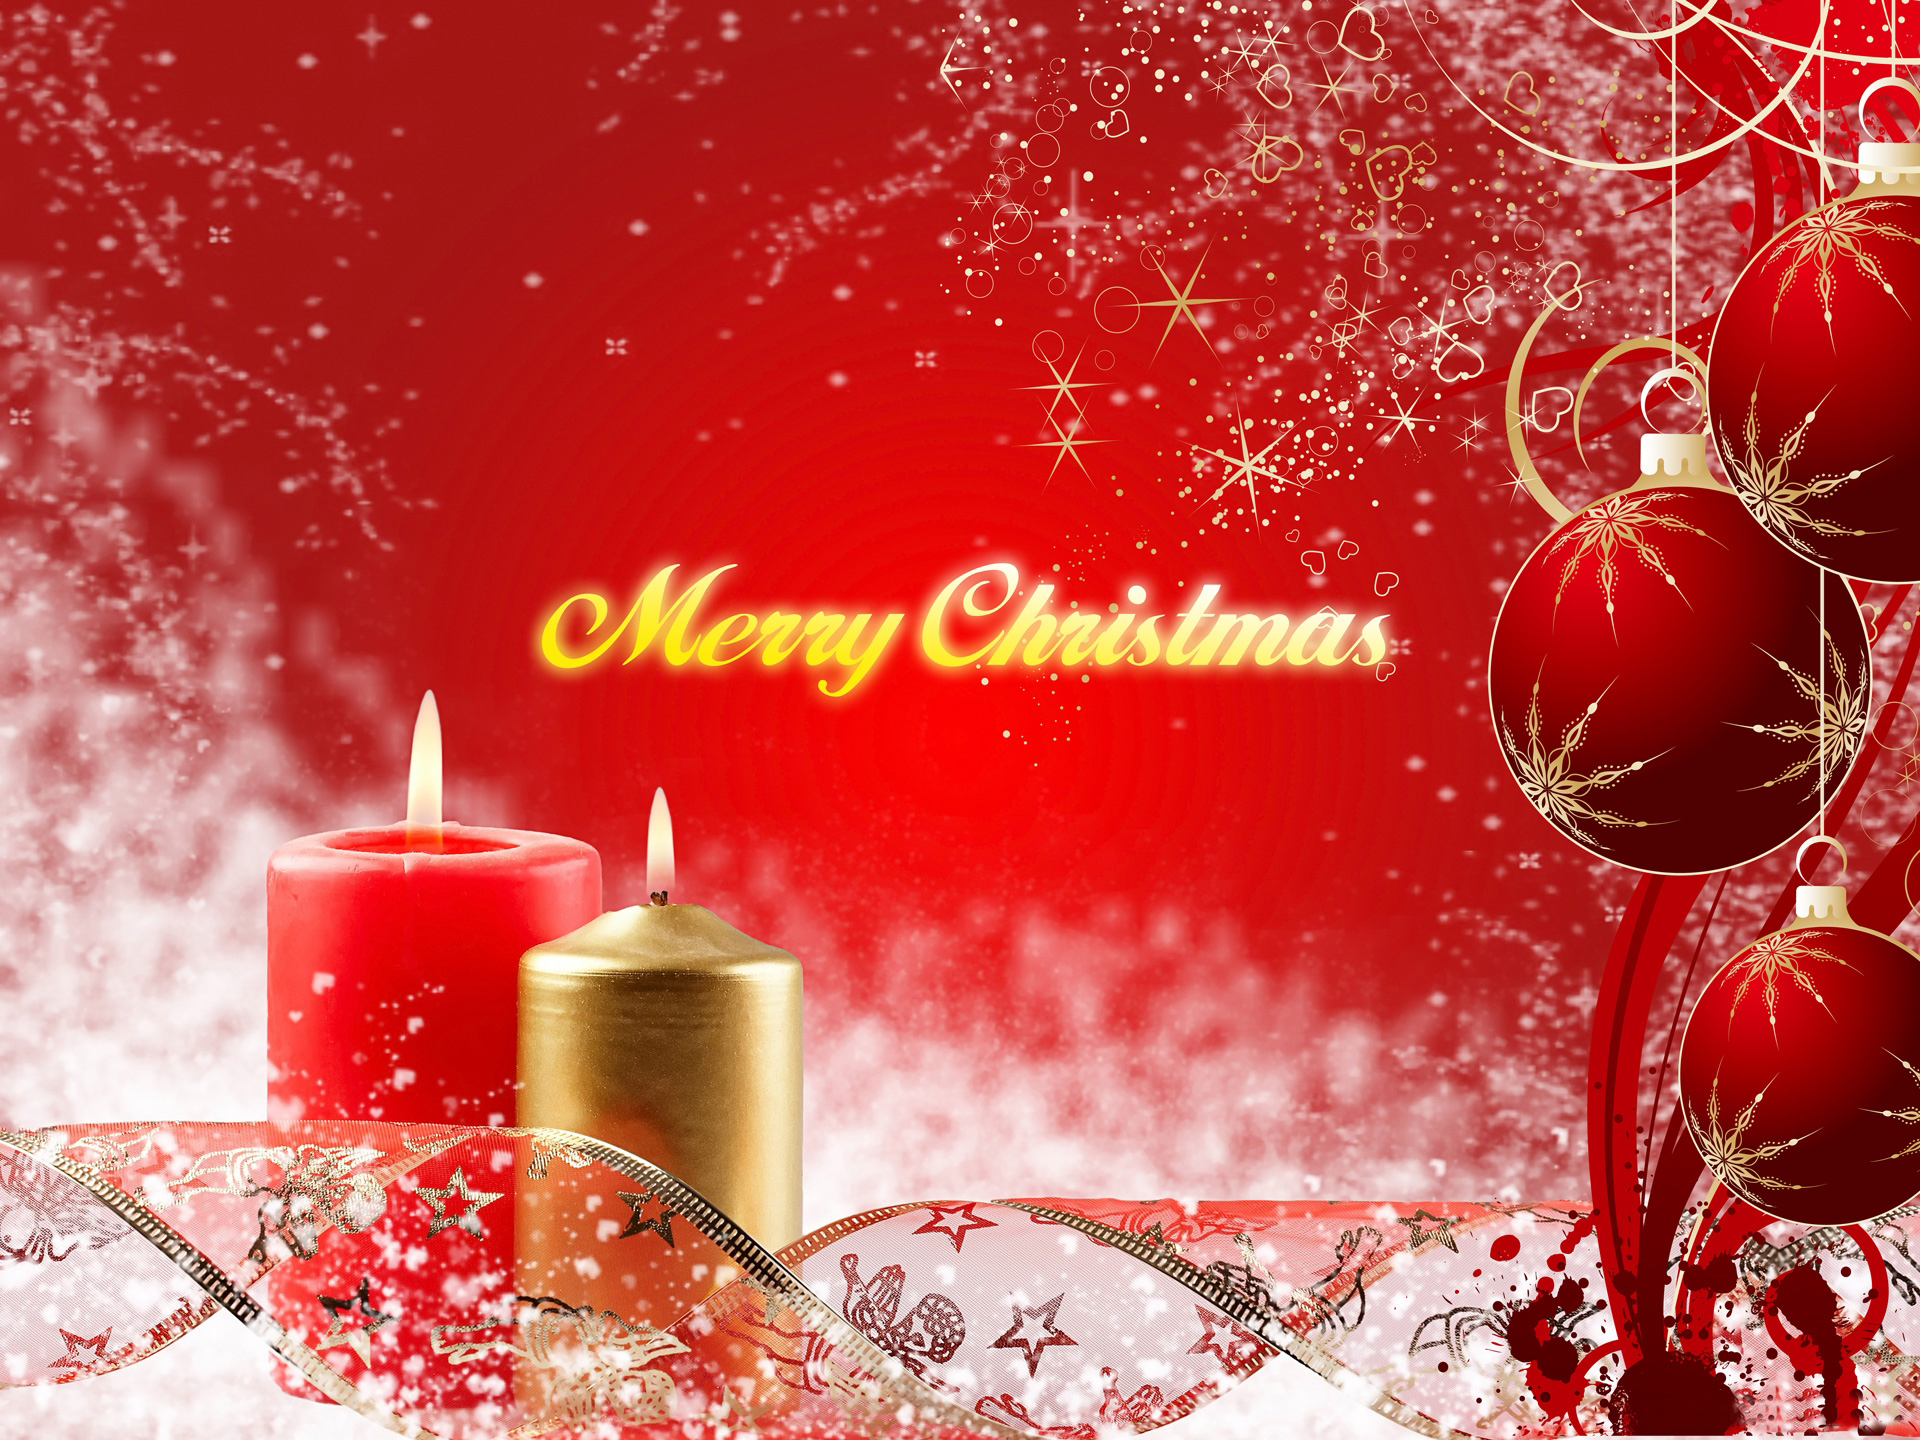 Merry-Christmas-Wishes-free-hd-wallappers-for-tablets